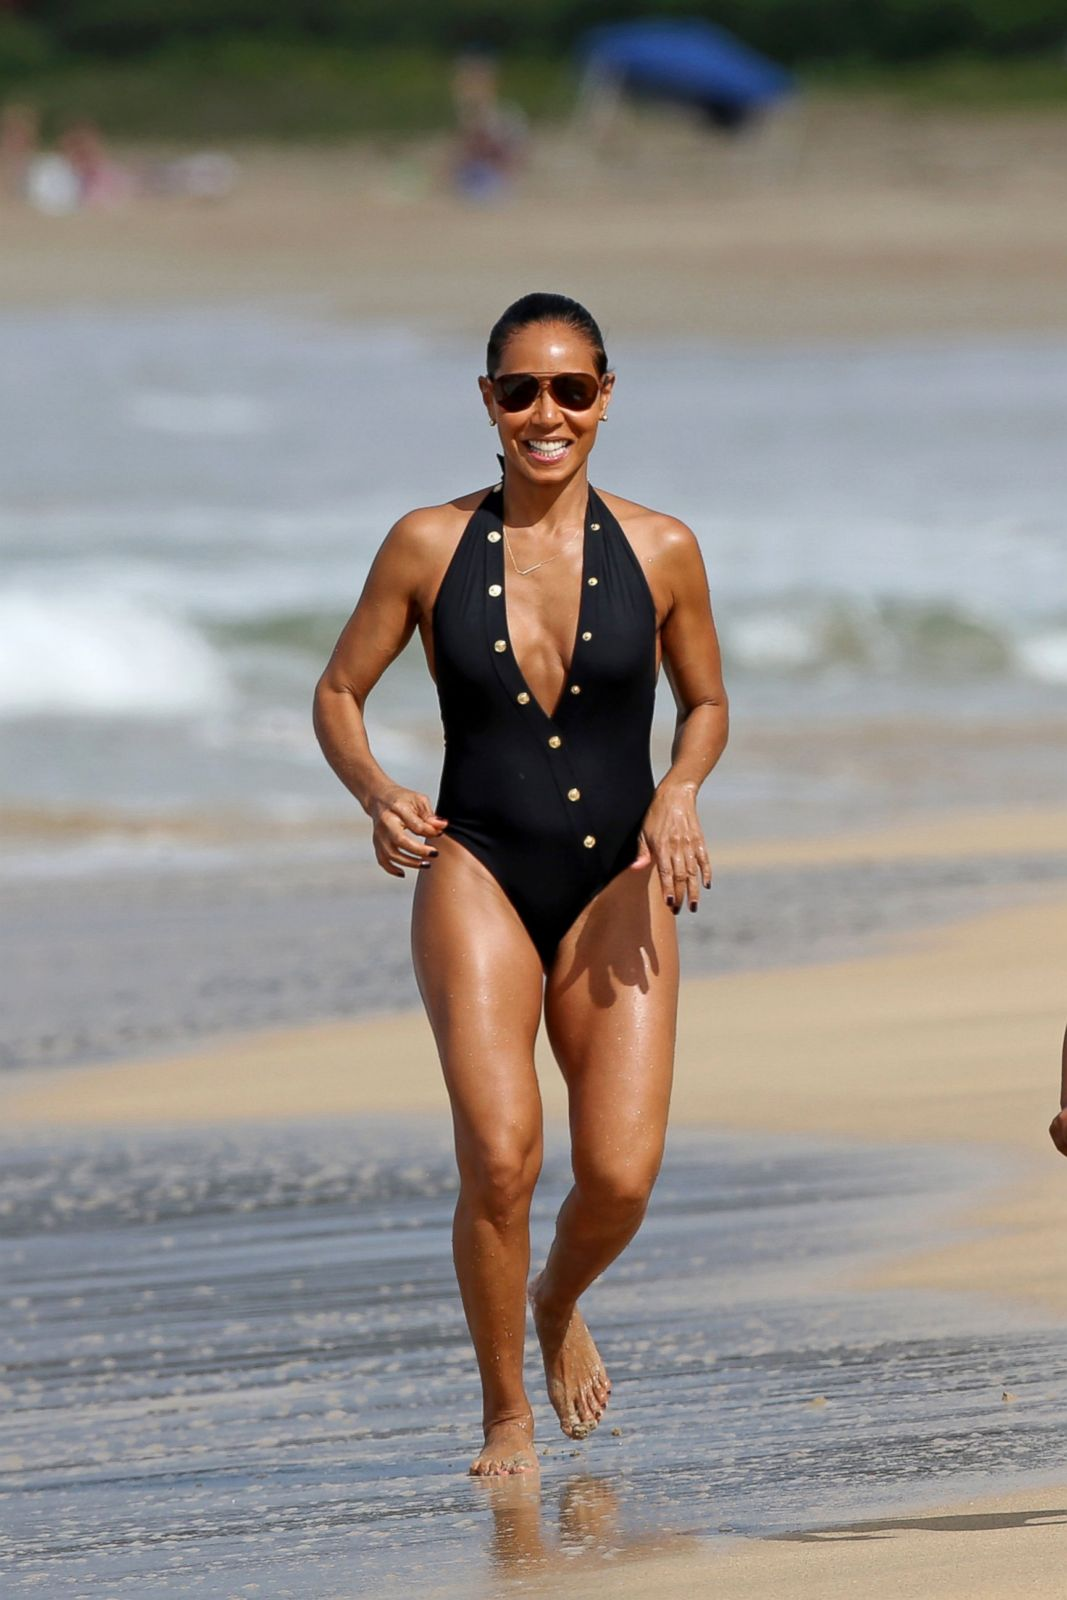 Bikini Candace Parker naked (33 foto and video), Tits, Sideboobs, Feet, bra 2019